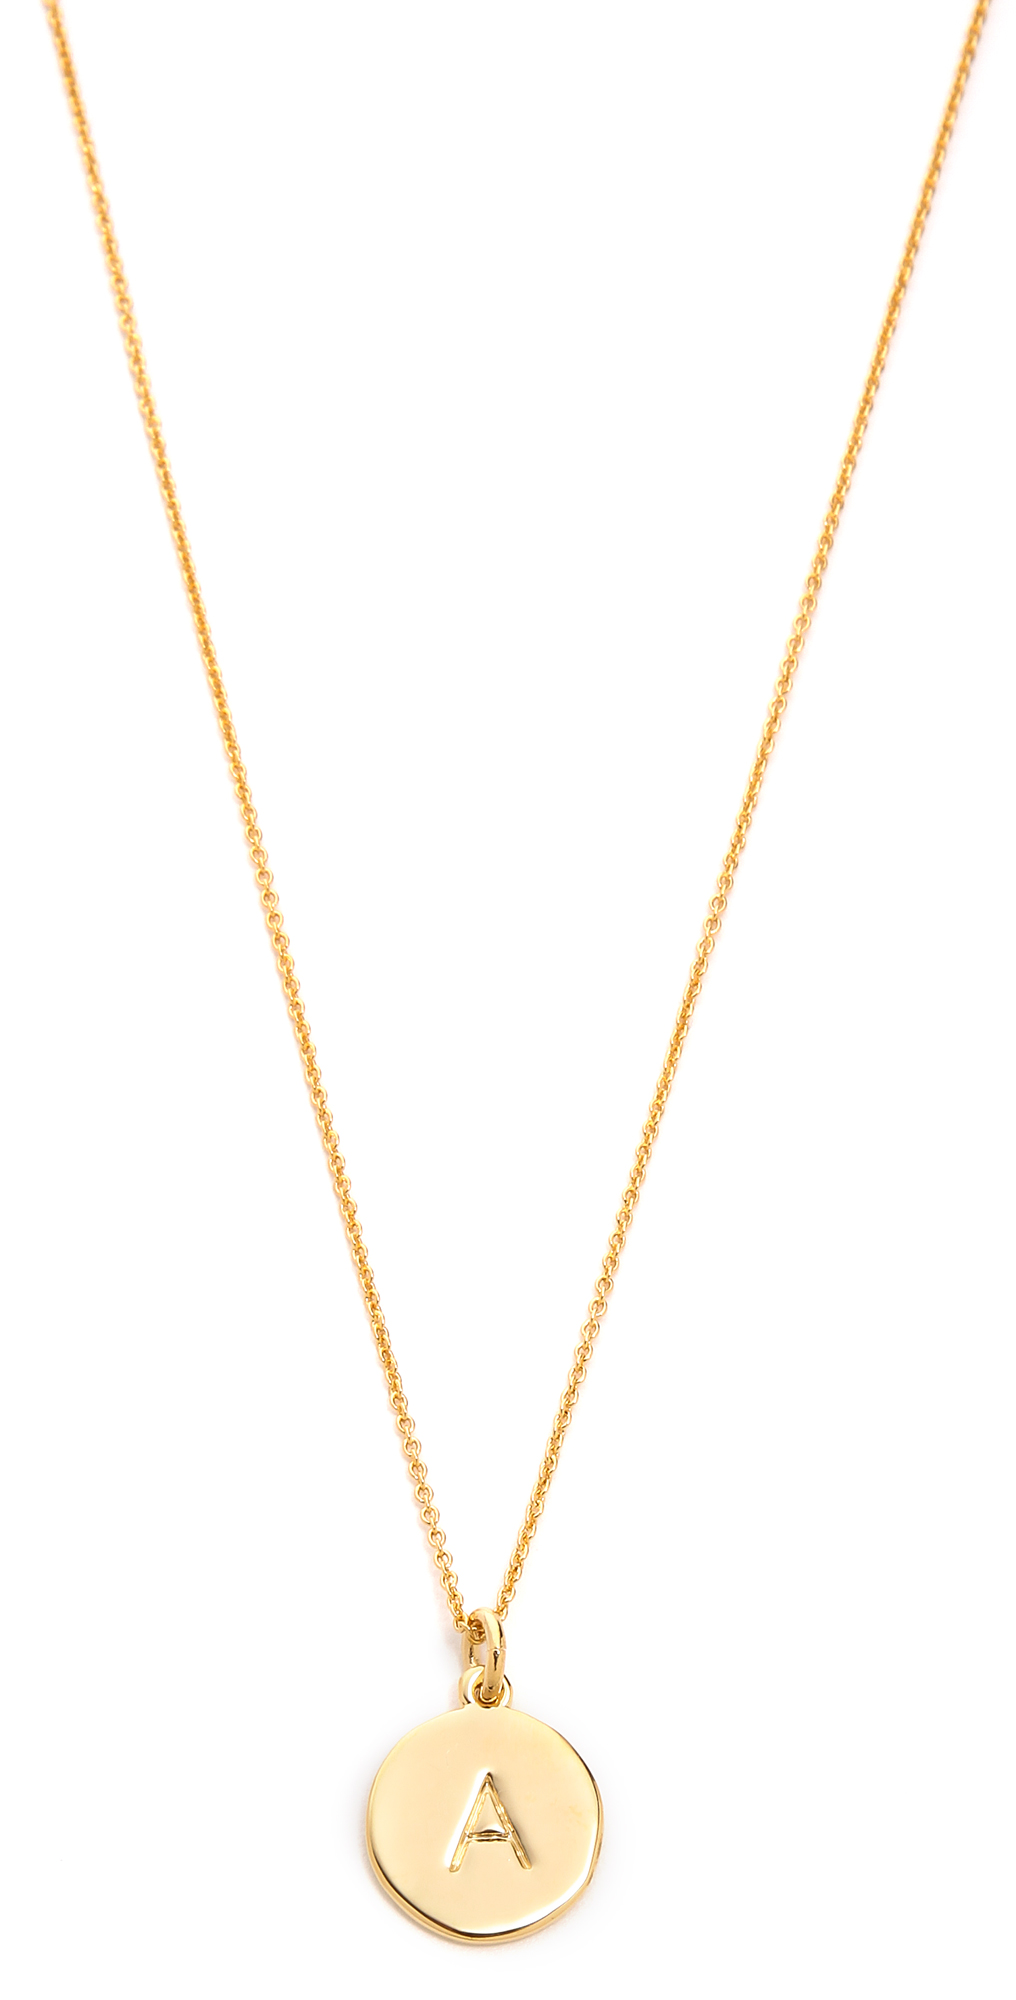 Letter Pendant Necklace Kate Spade New York